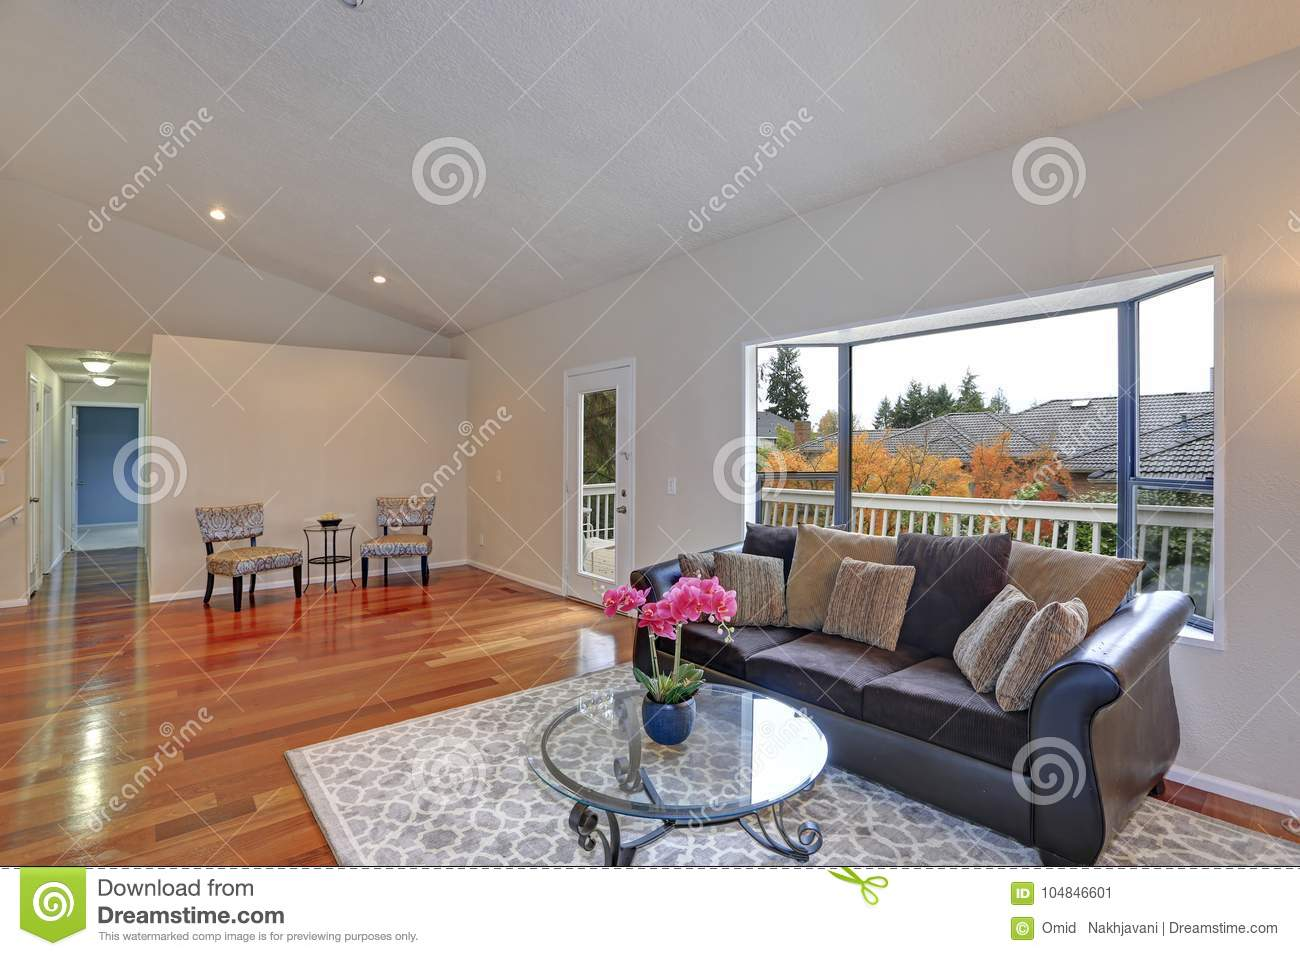 Simple Rustic Living Room Design Stock Image Image Of Floor Architecture 104846601